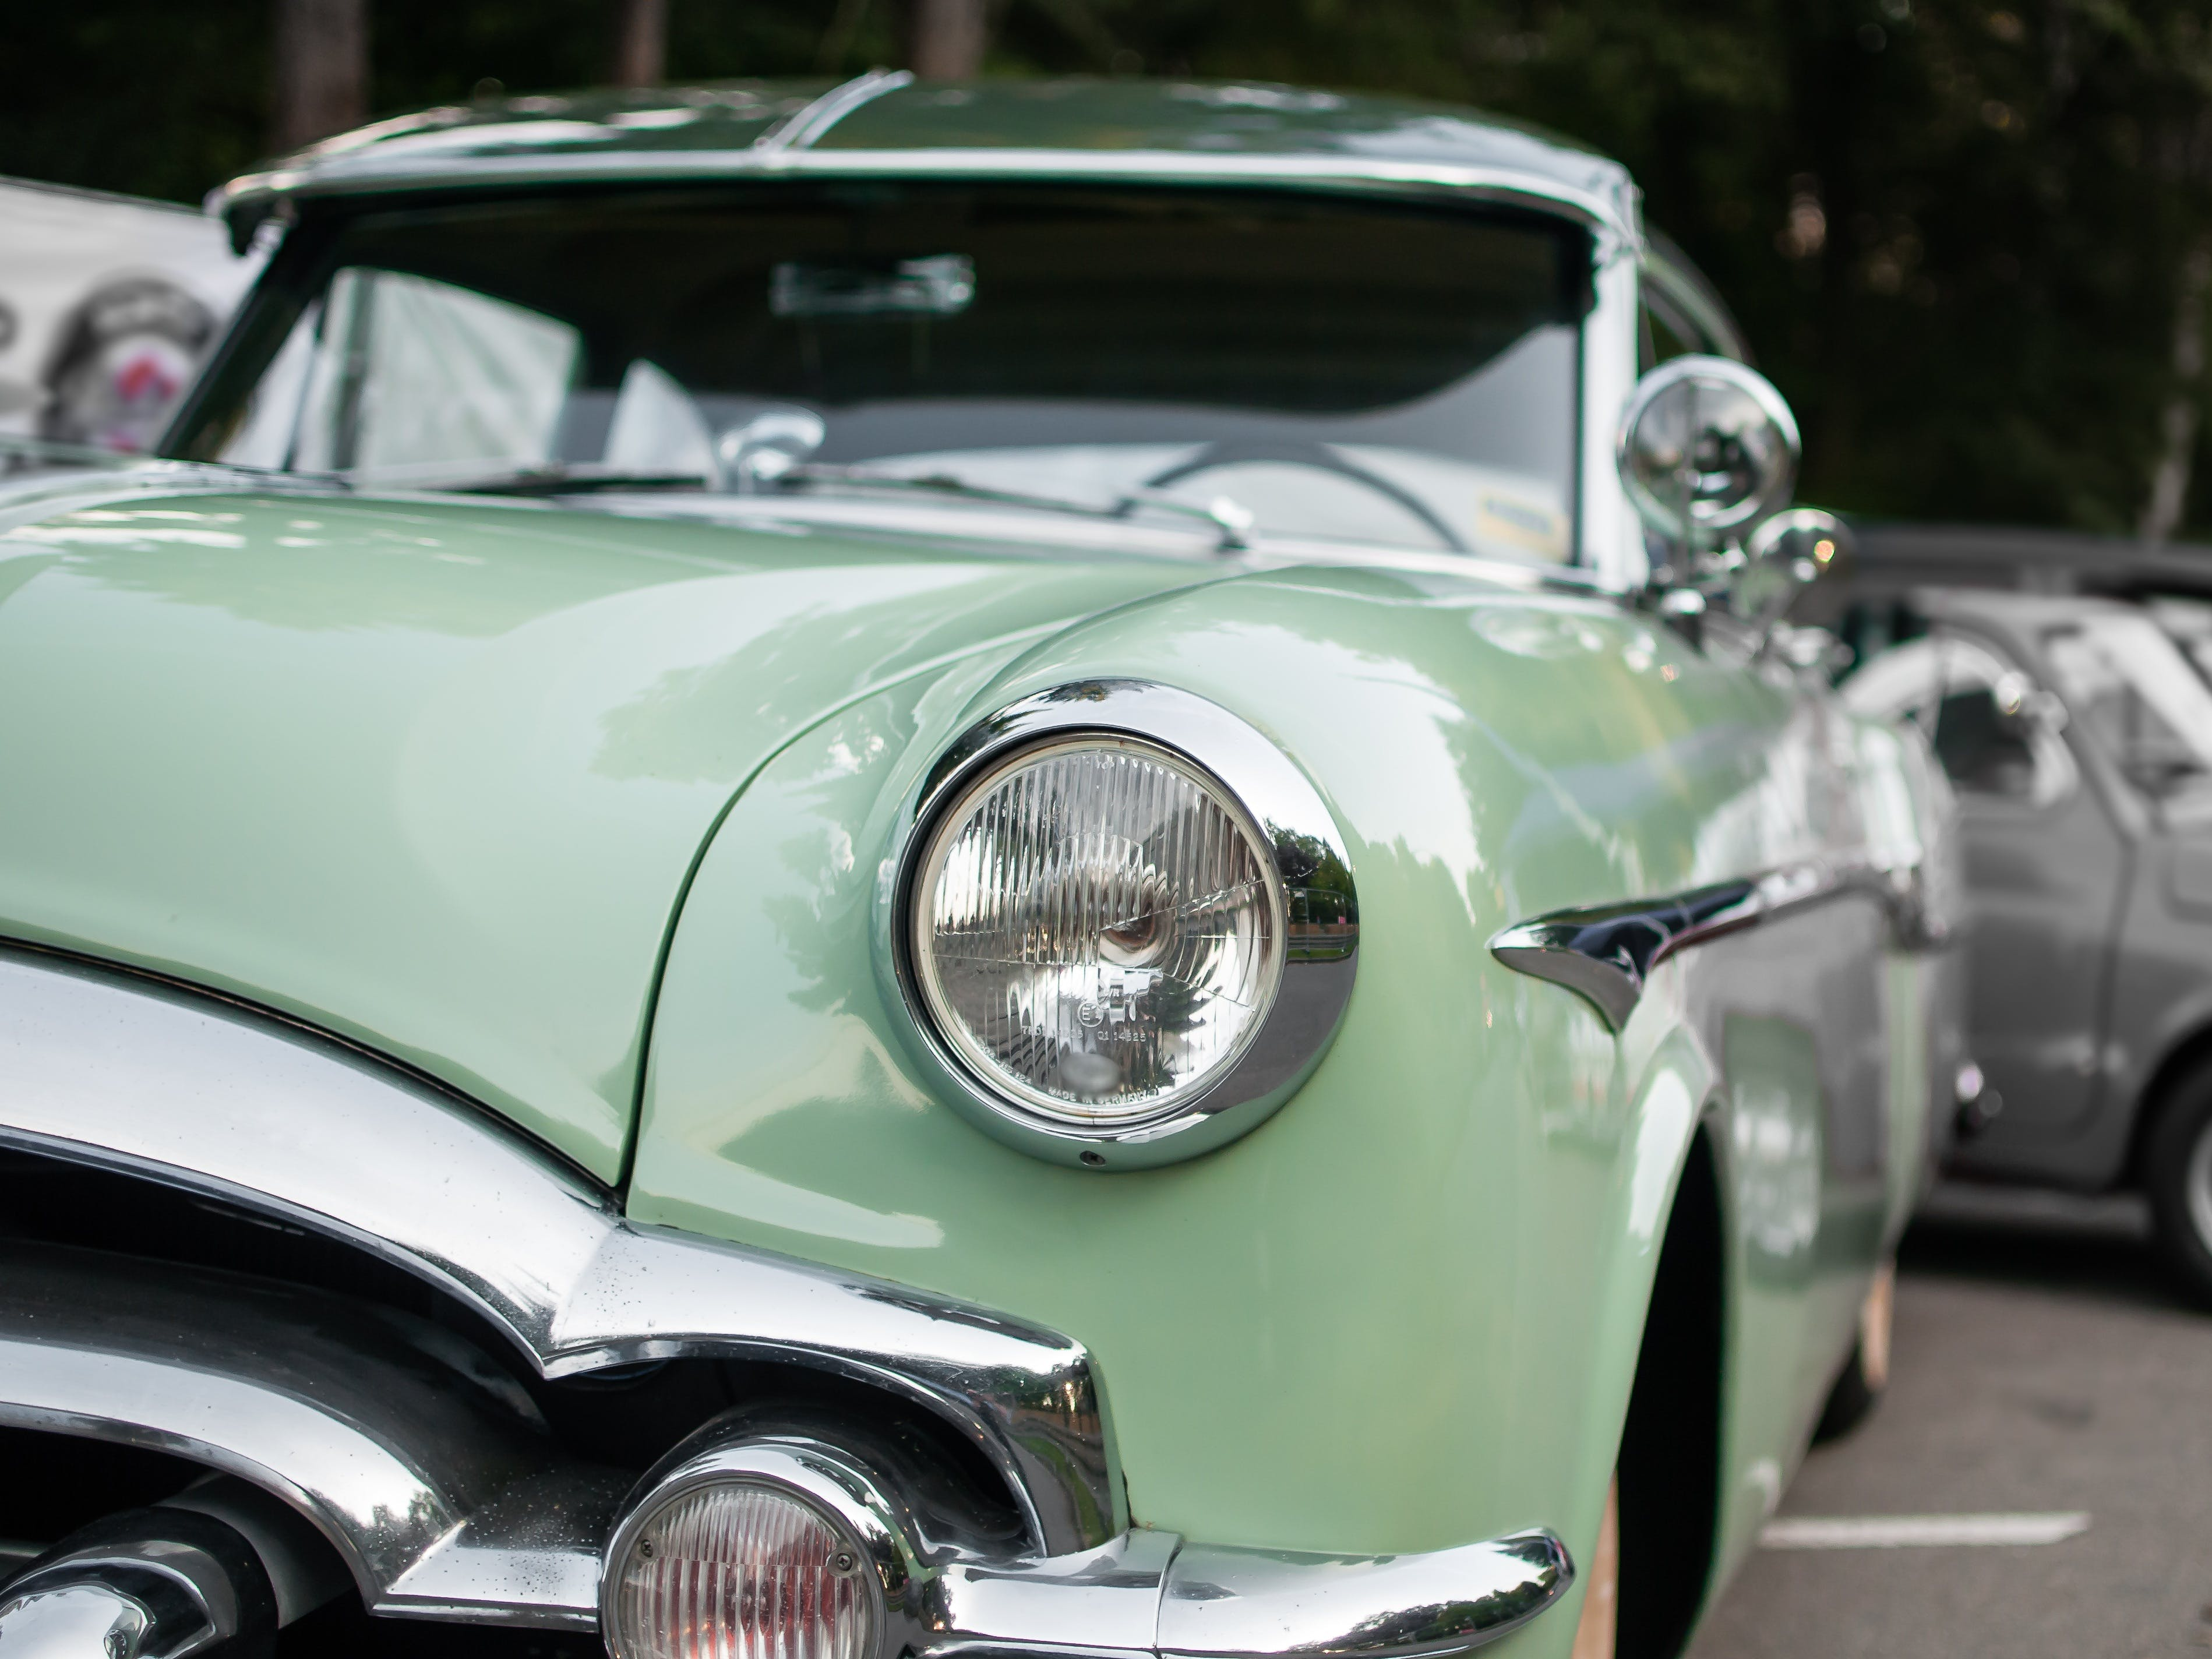 Free stock photo of car, vehicle, classic, headlight